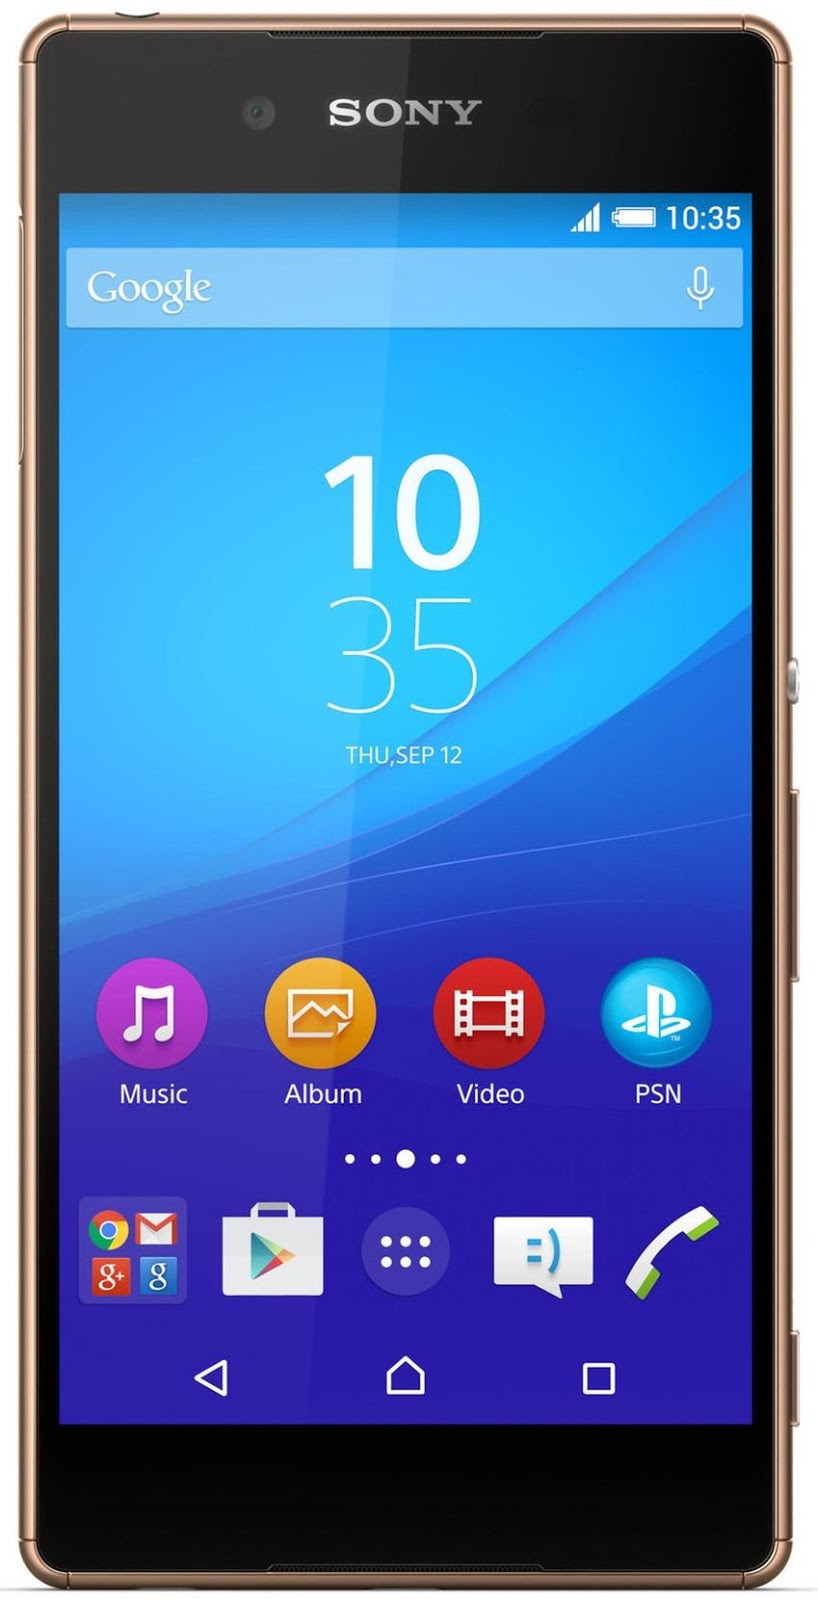 C:Users-Desktopsony-announces-the-sony-xperia-z433-1198x1920.jpg